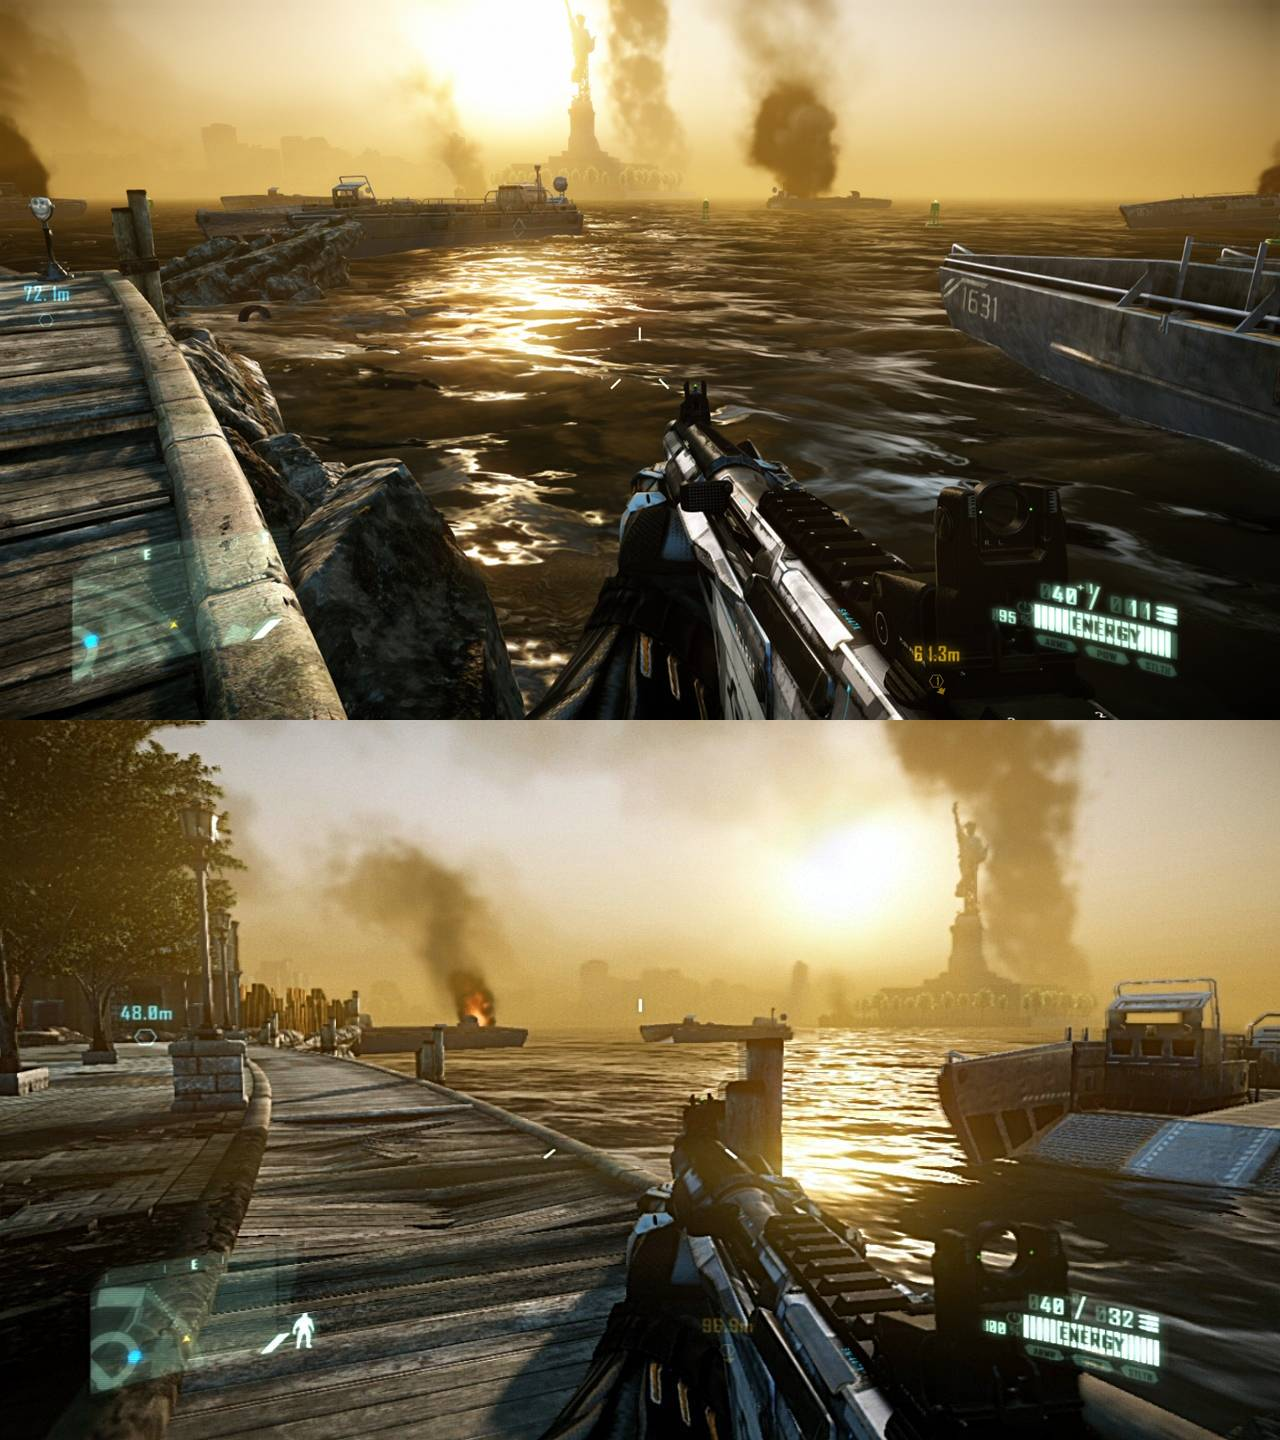 PS4 Must In 2012 Crysis 2 PC DX 11 Vs PS3 Screenshot Comparison